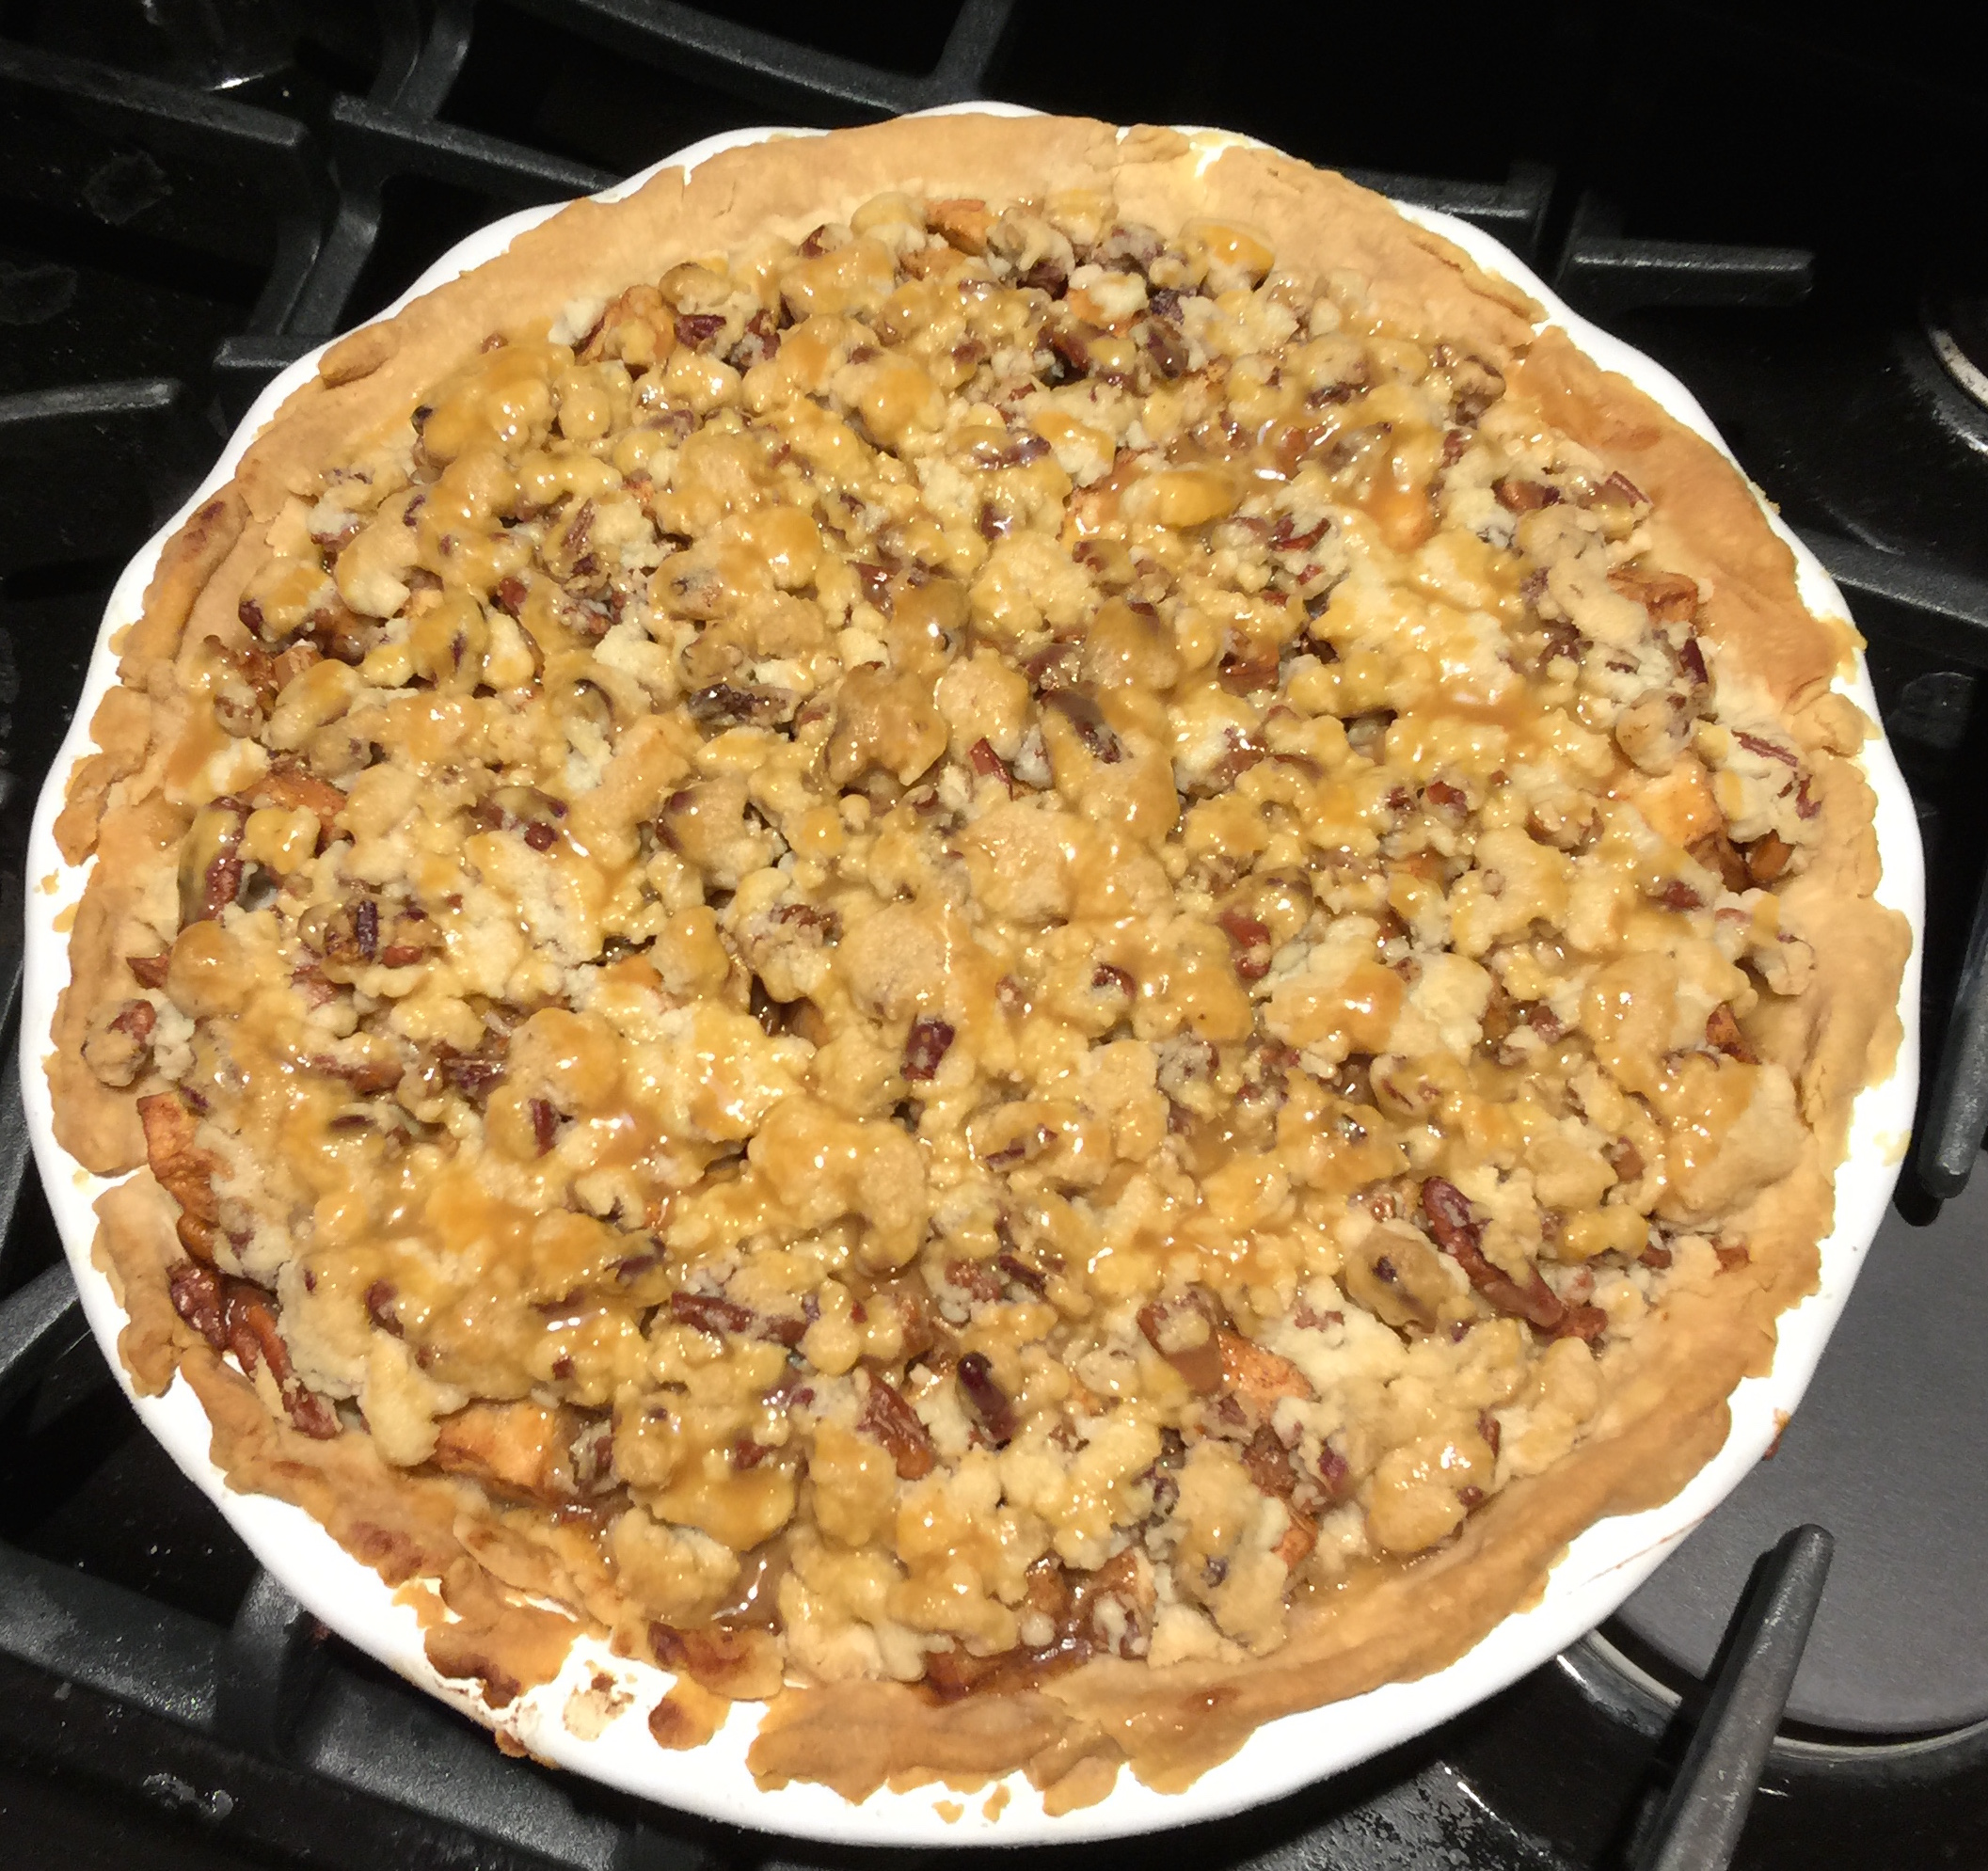 Caramel Pecan Apple Pie Whole